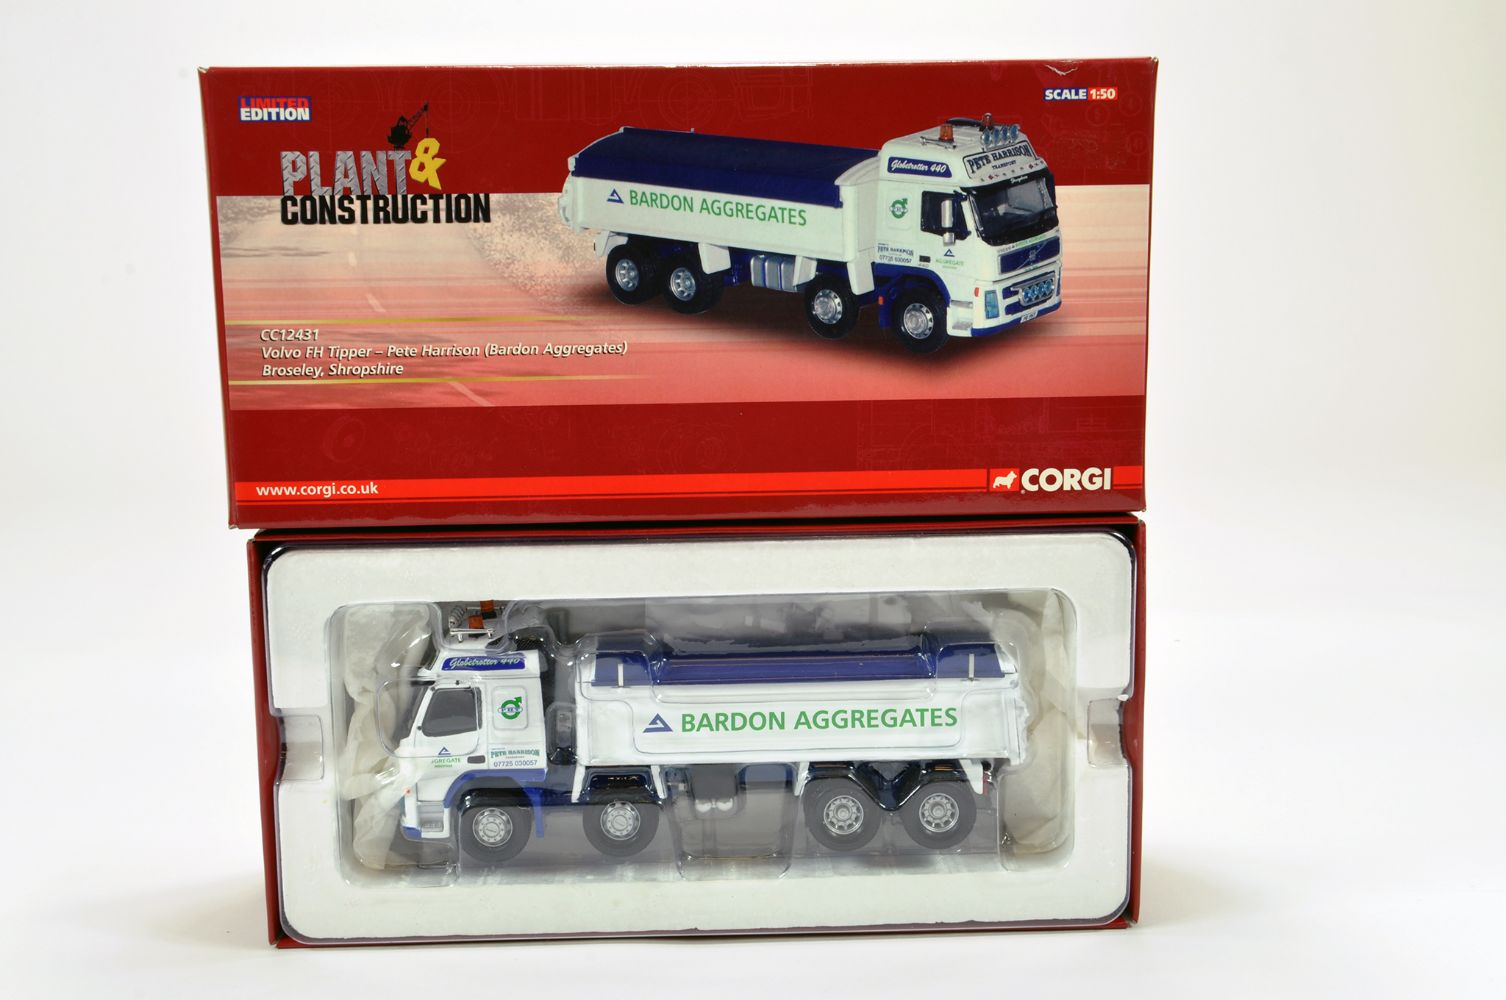 Three Day Specialist Auction inc Toys, Models, Collectables, Border Fine Arts - Over 2000 Lots